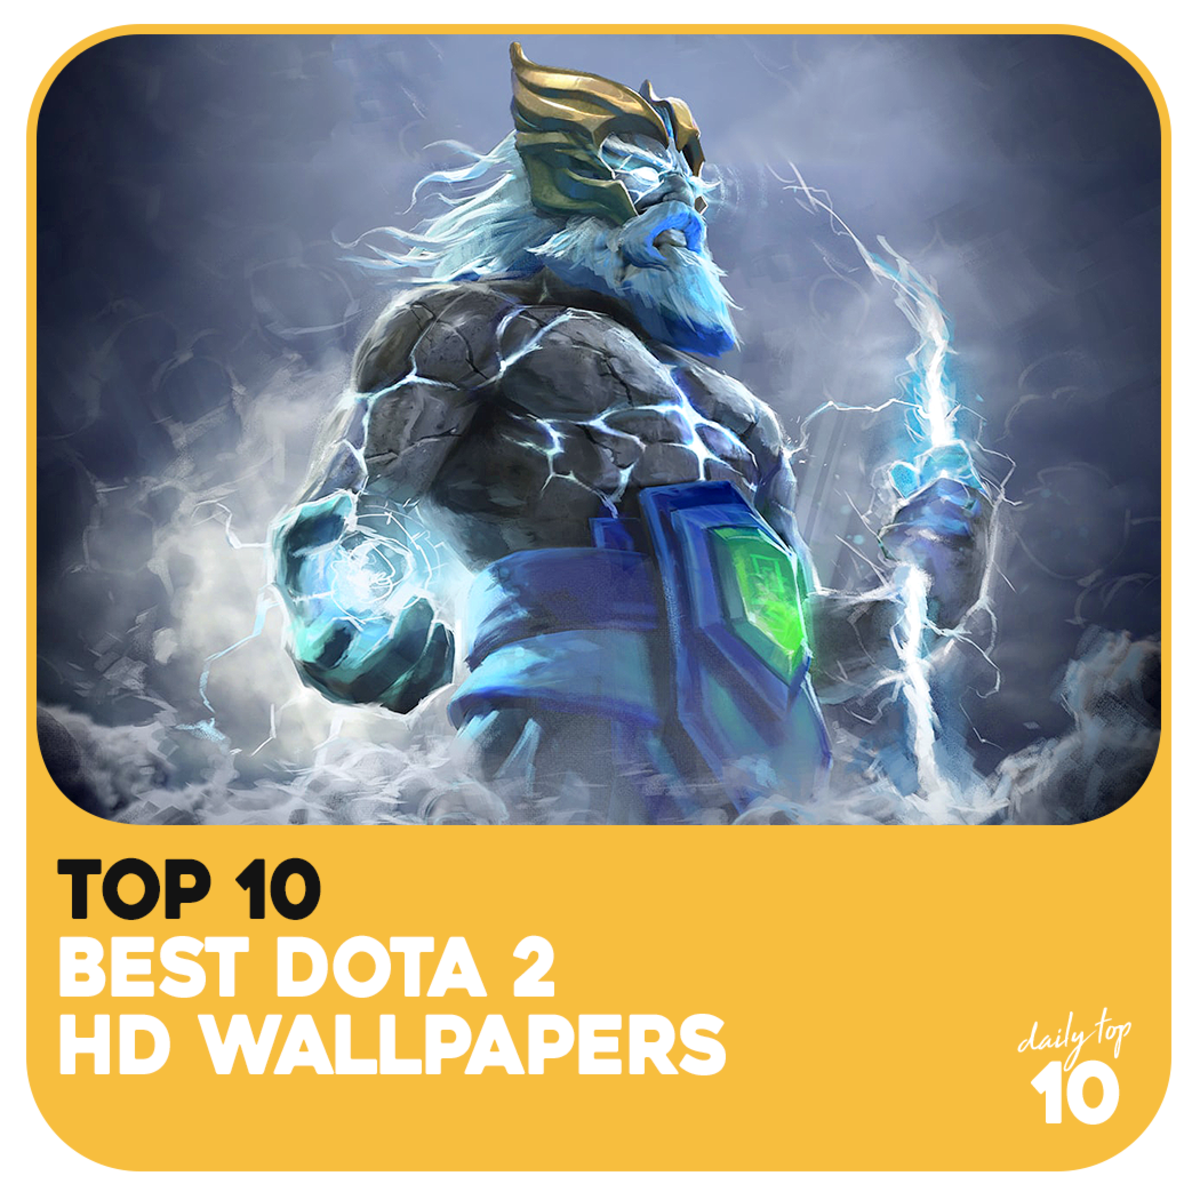 Top 10 Best Dota 2 Hd Wallpapers Every Dota 2 Player Should